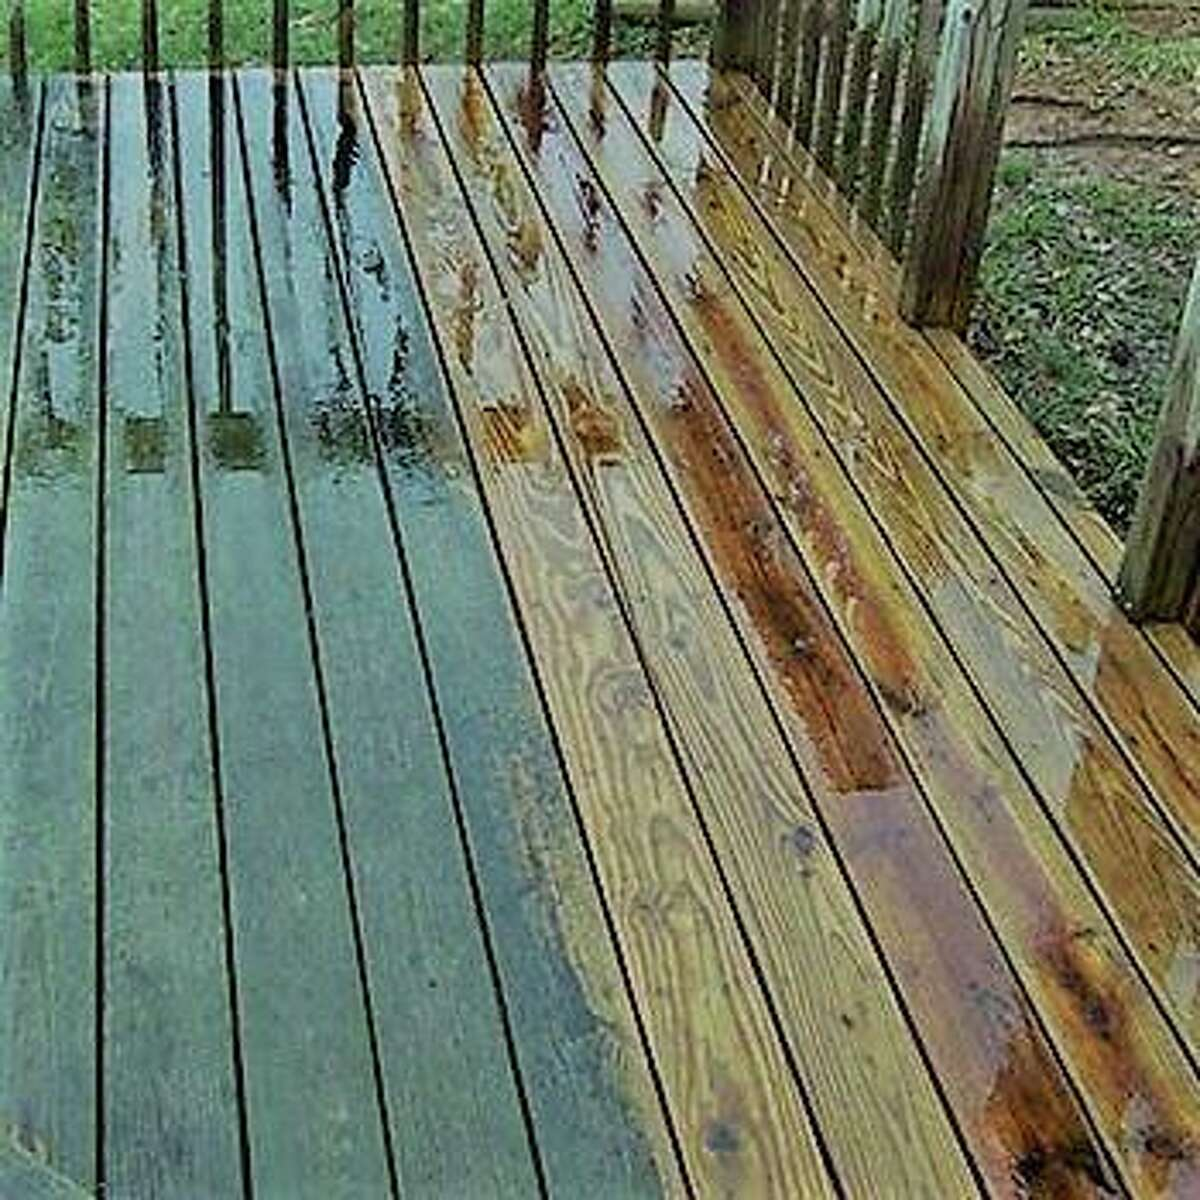 Sarge's Power Wash specializes in pressure-washing driveways, porches, decks, fencing, garages and soft-washing home exteriors. It is owned and operated by Deer Park resident and U.S. Army veteran Glen Beran.